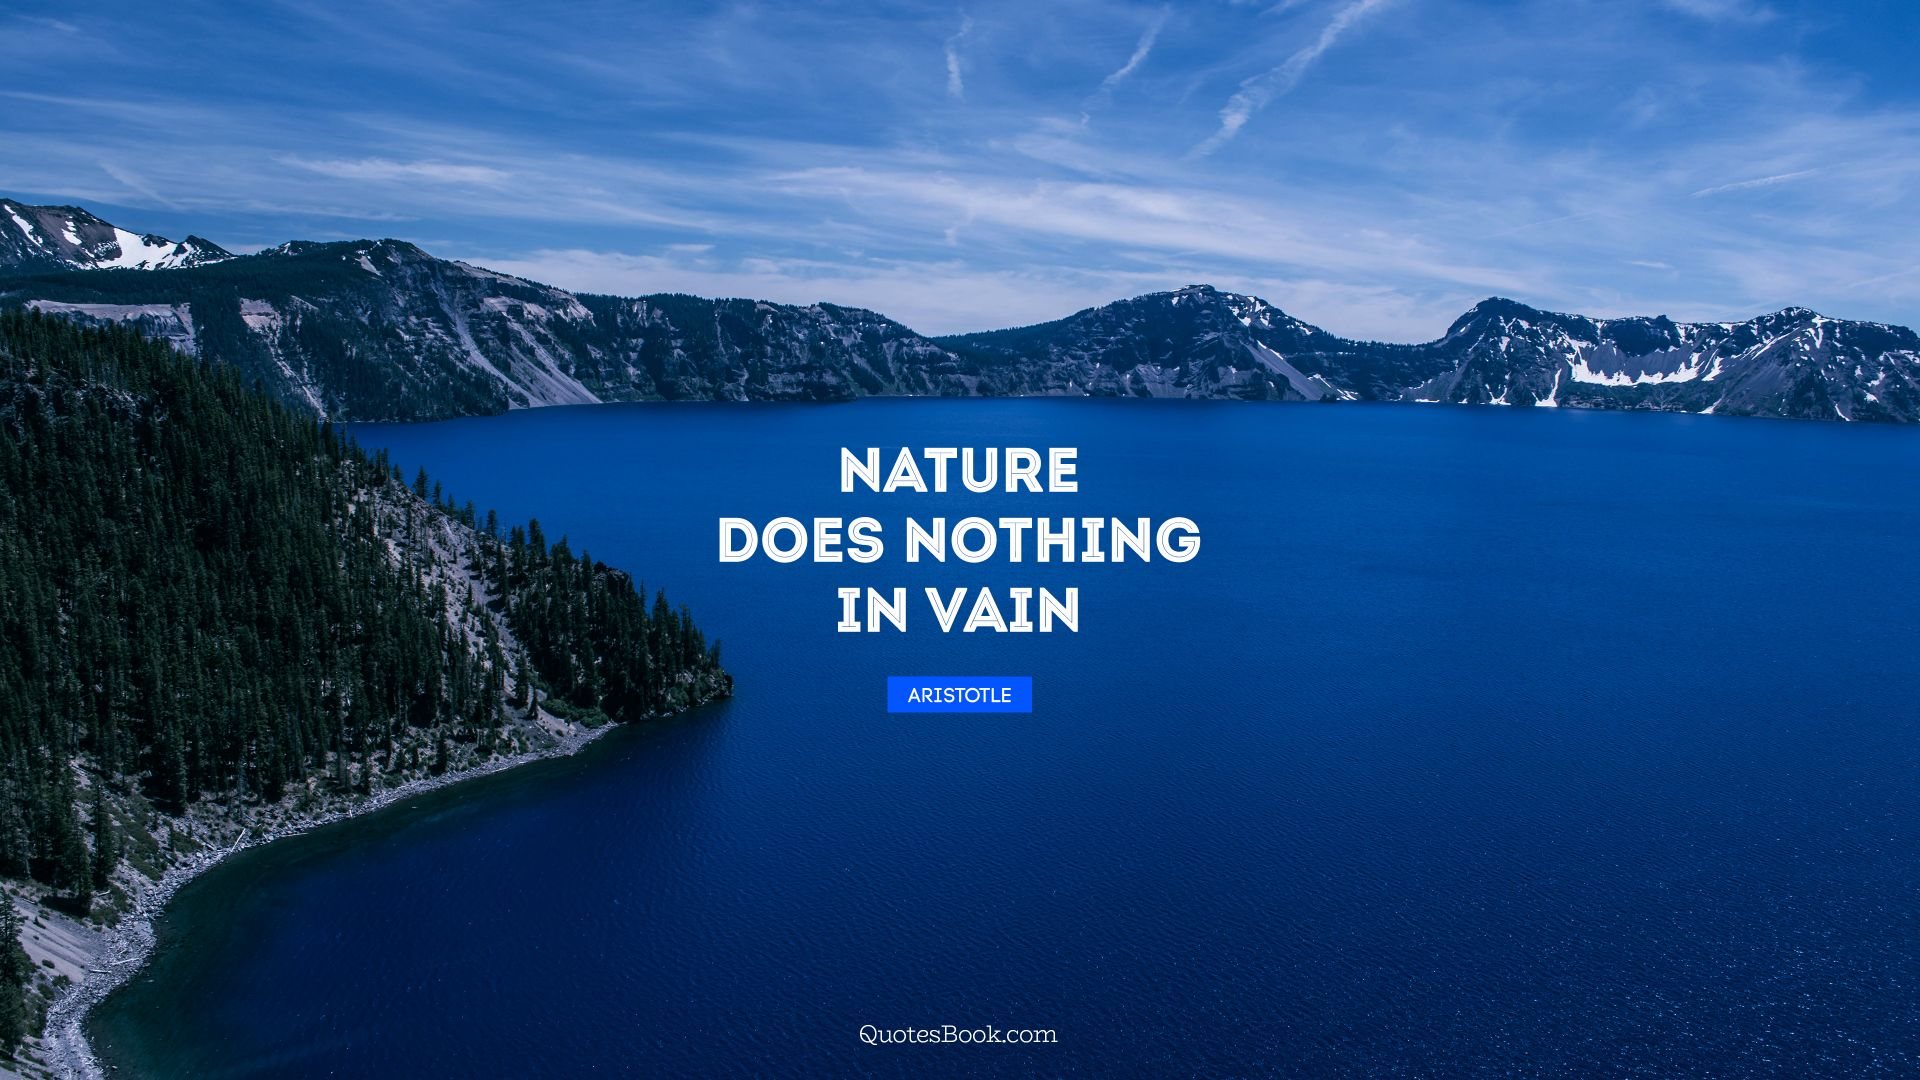 Nature does nothing in vain. - Quote by Aristotle